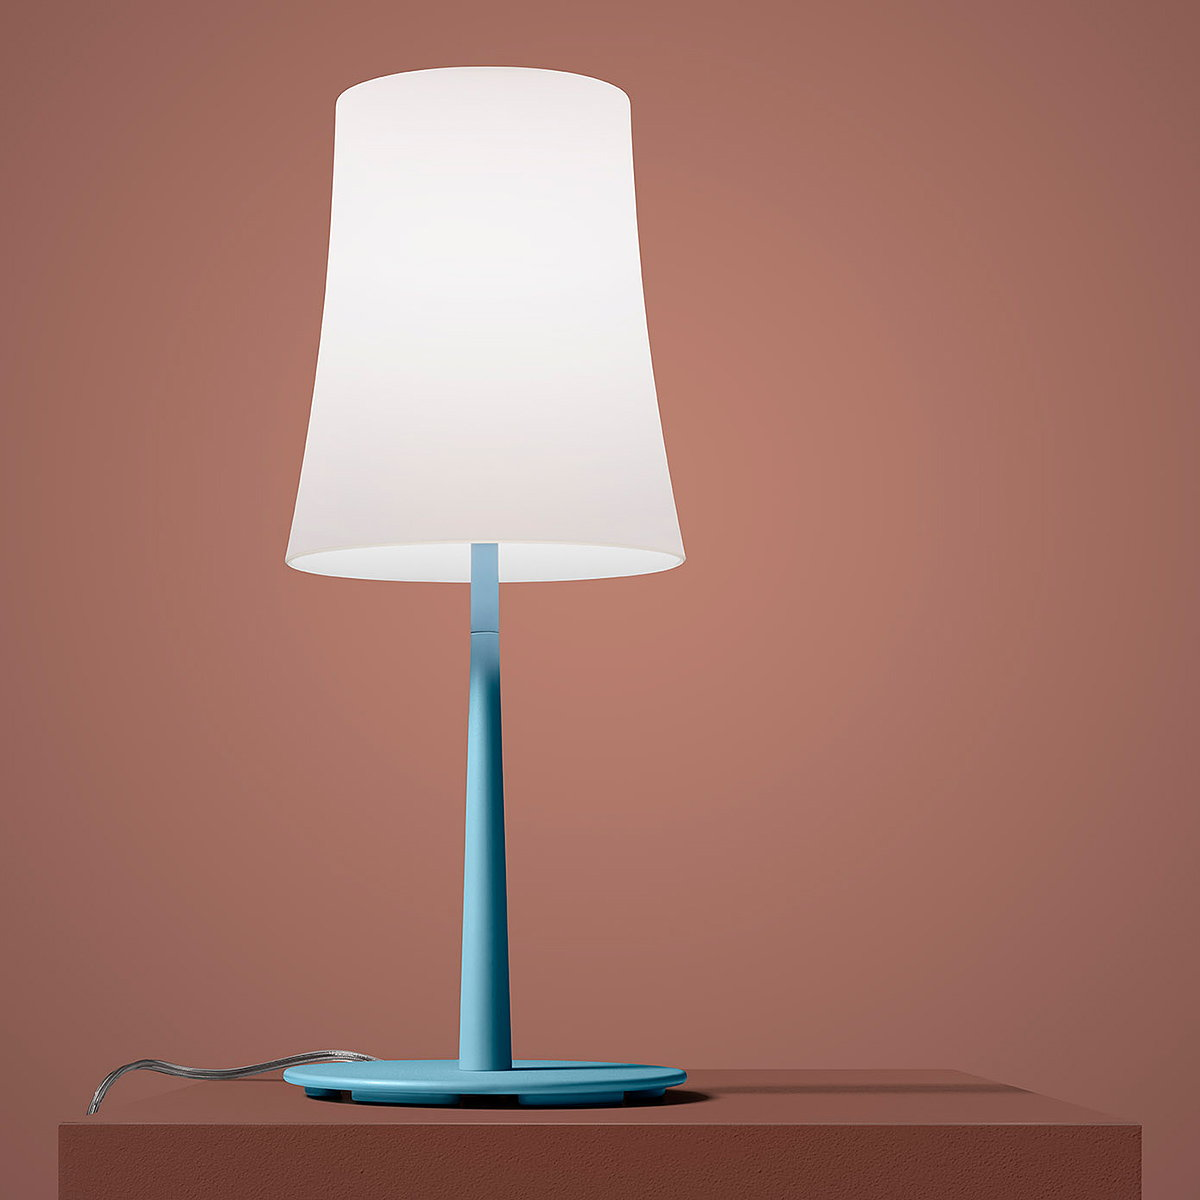 Foscarini Launches Table Lamps Inspired by Birds